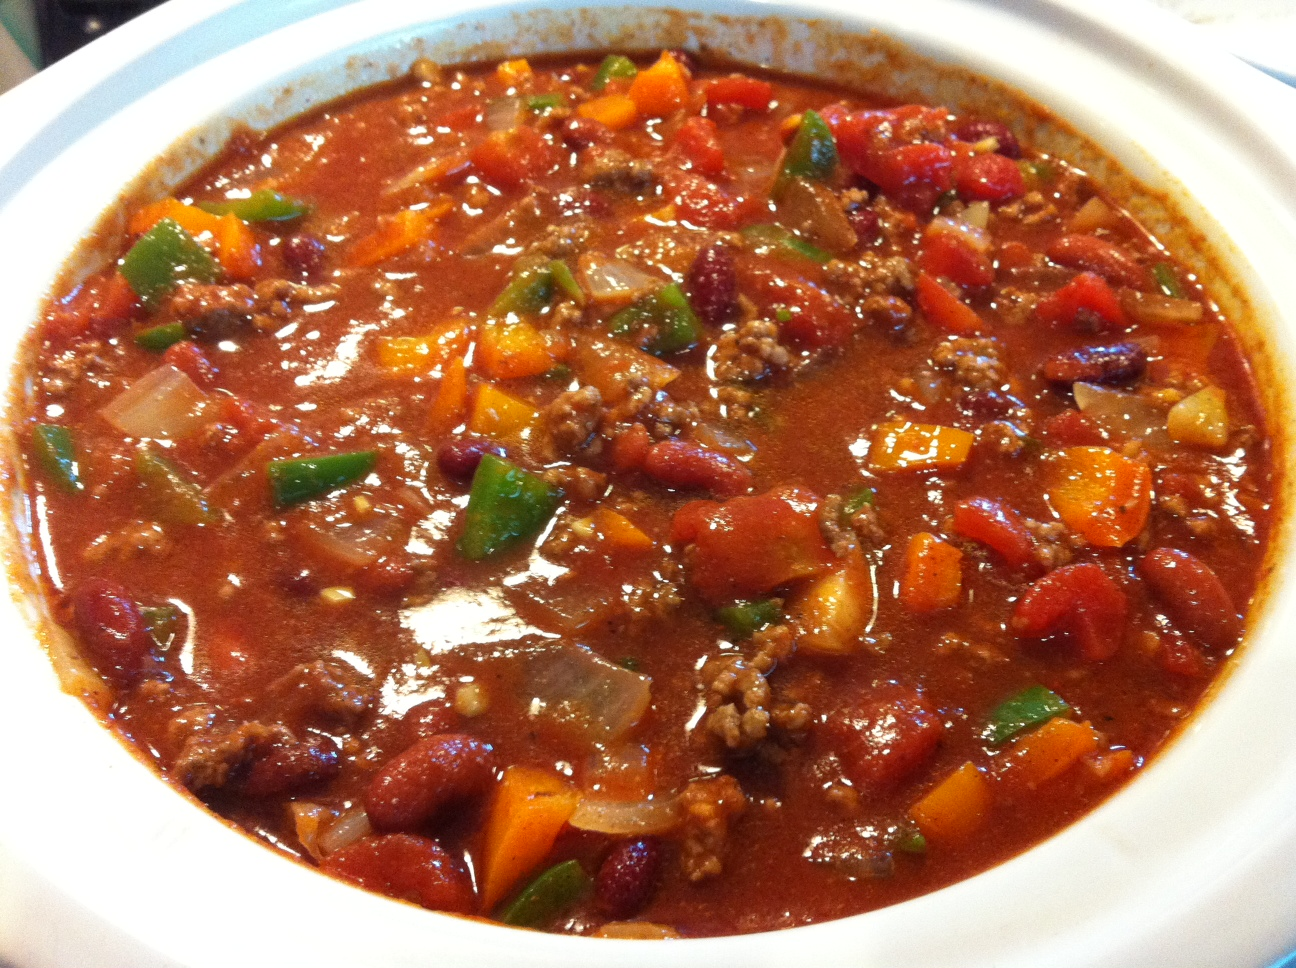 ... Chili Recipe Crock Pot Chili Recipe Crock Pot Easy Beef with Beans